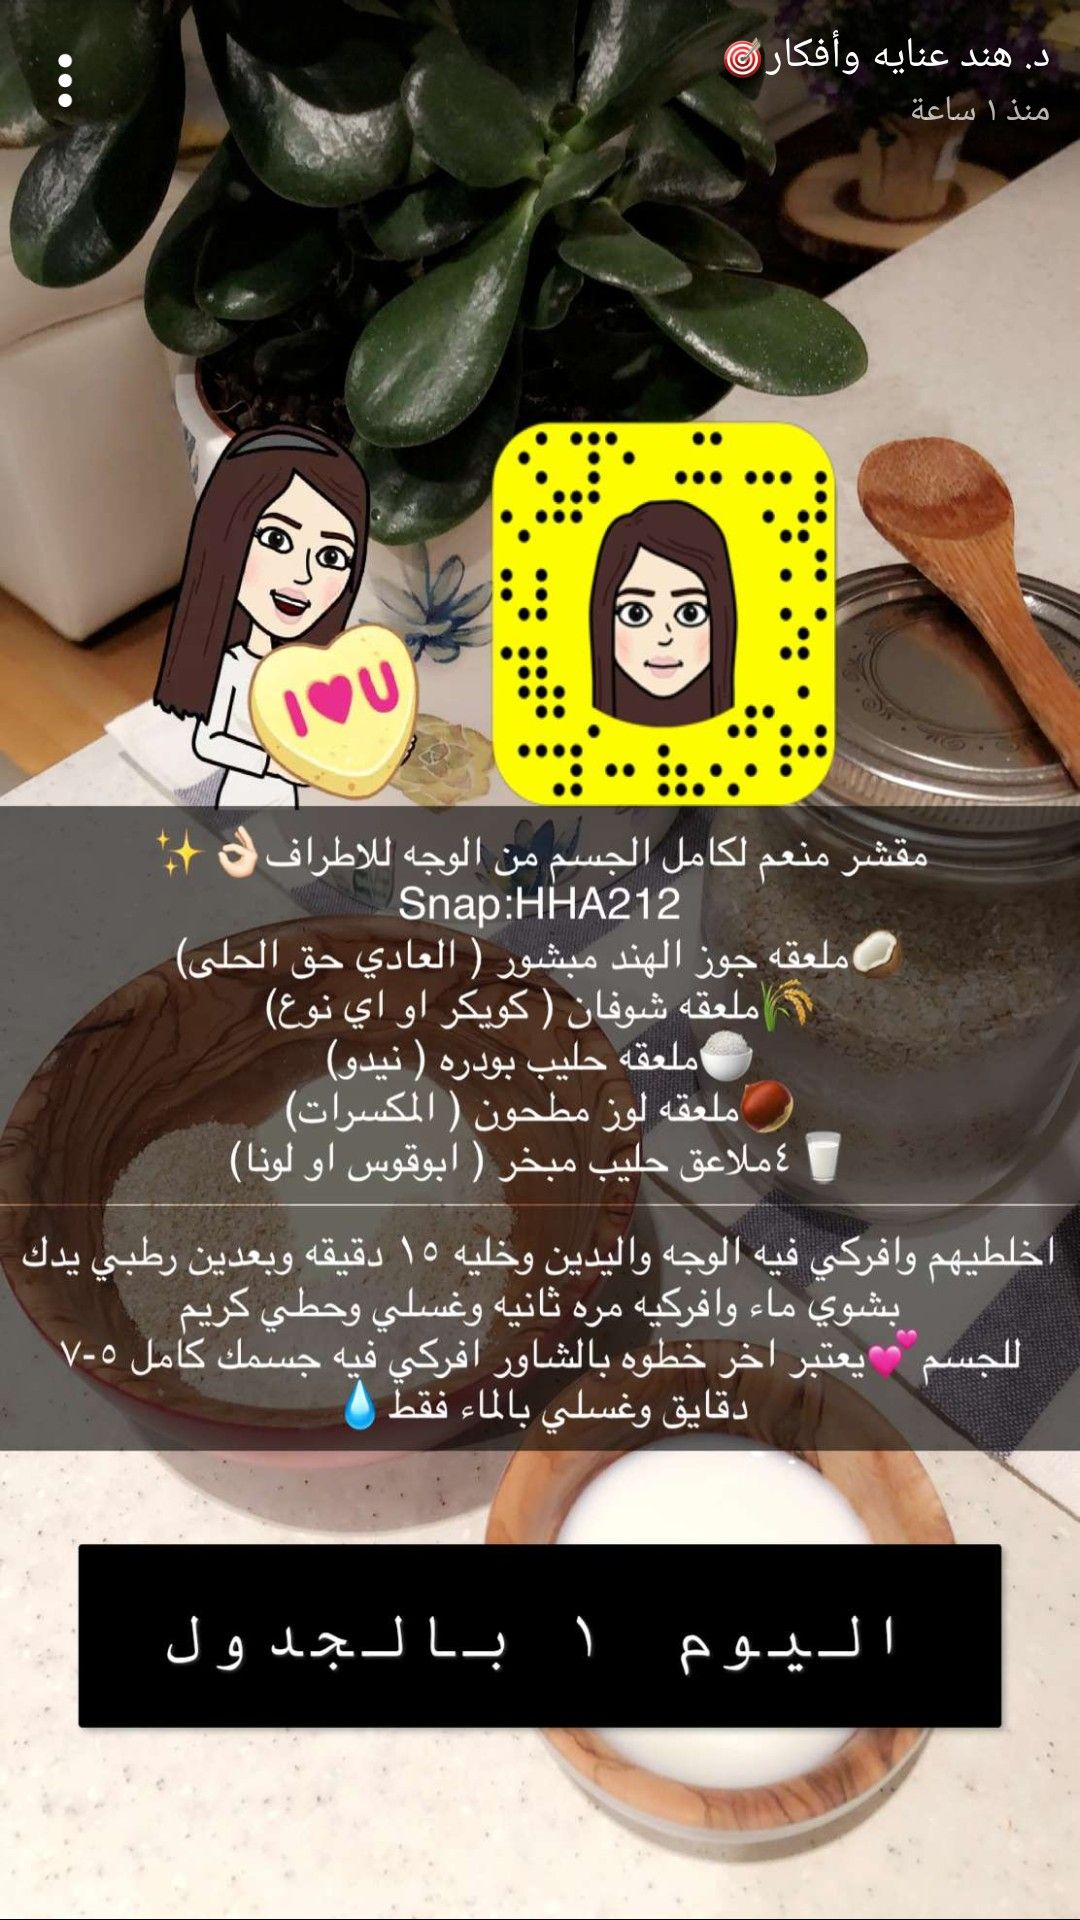 Pin By وهم On د هند عنايه وأفكار Beauty Skin Care Routine Skin Care Mask Beauty Care